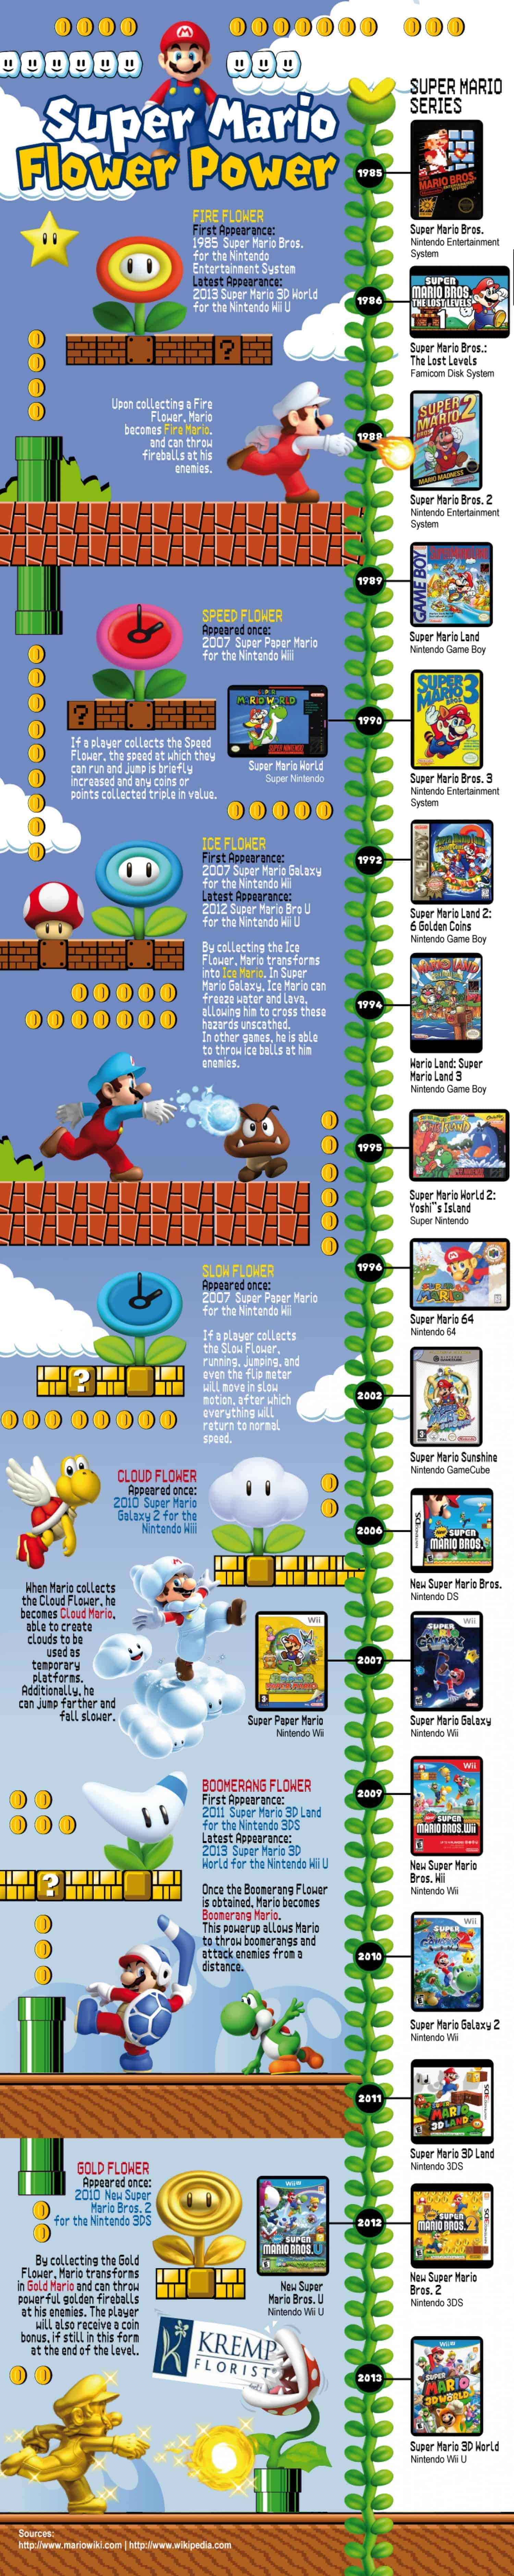 super-mario-flower-power_5339b1b429f7f_w1500